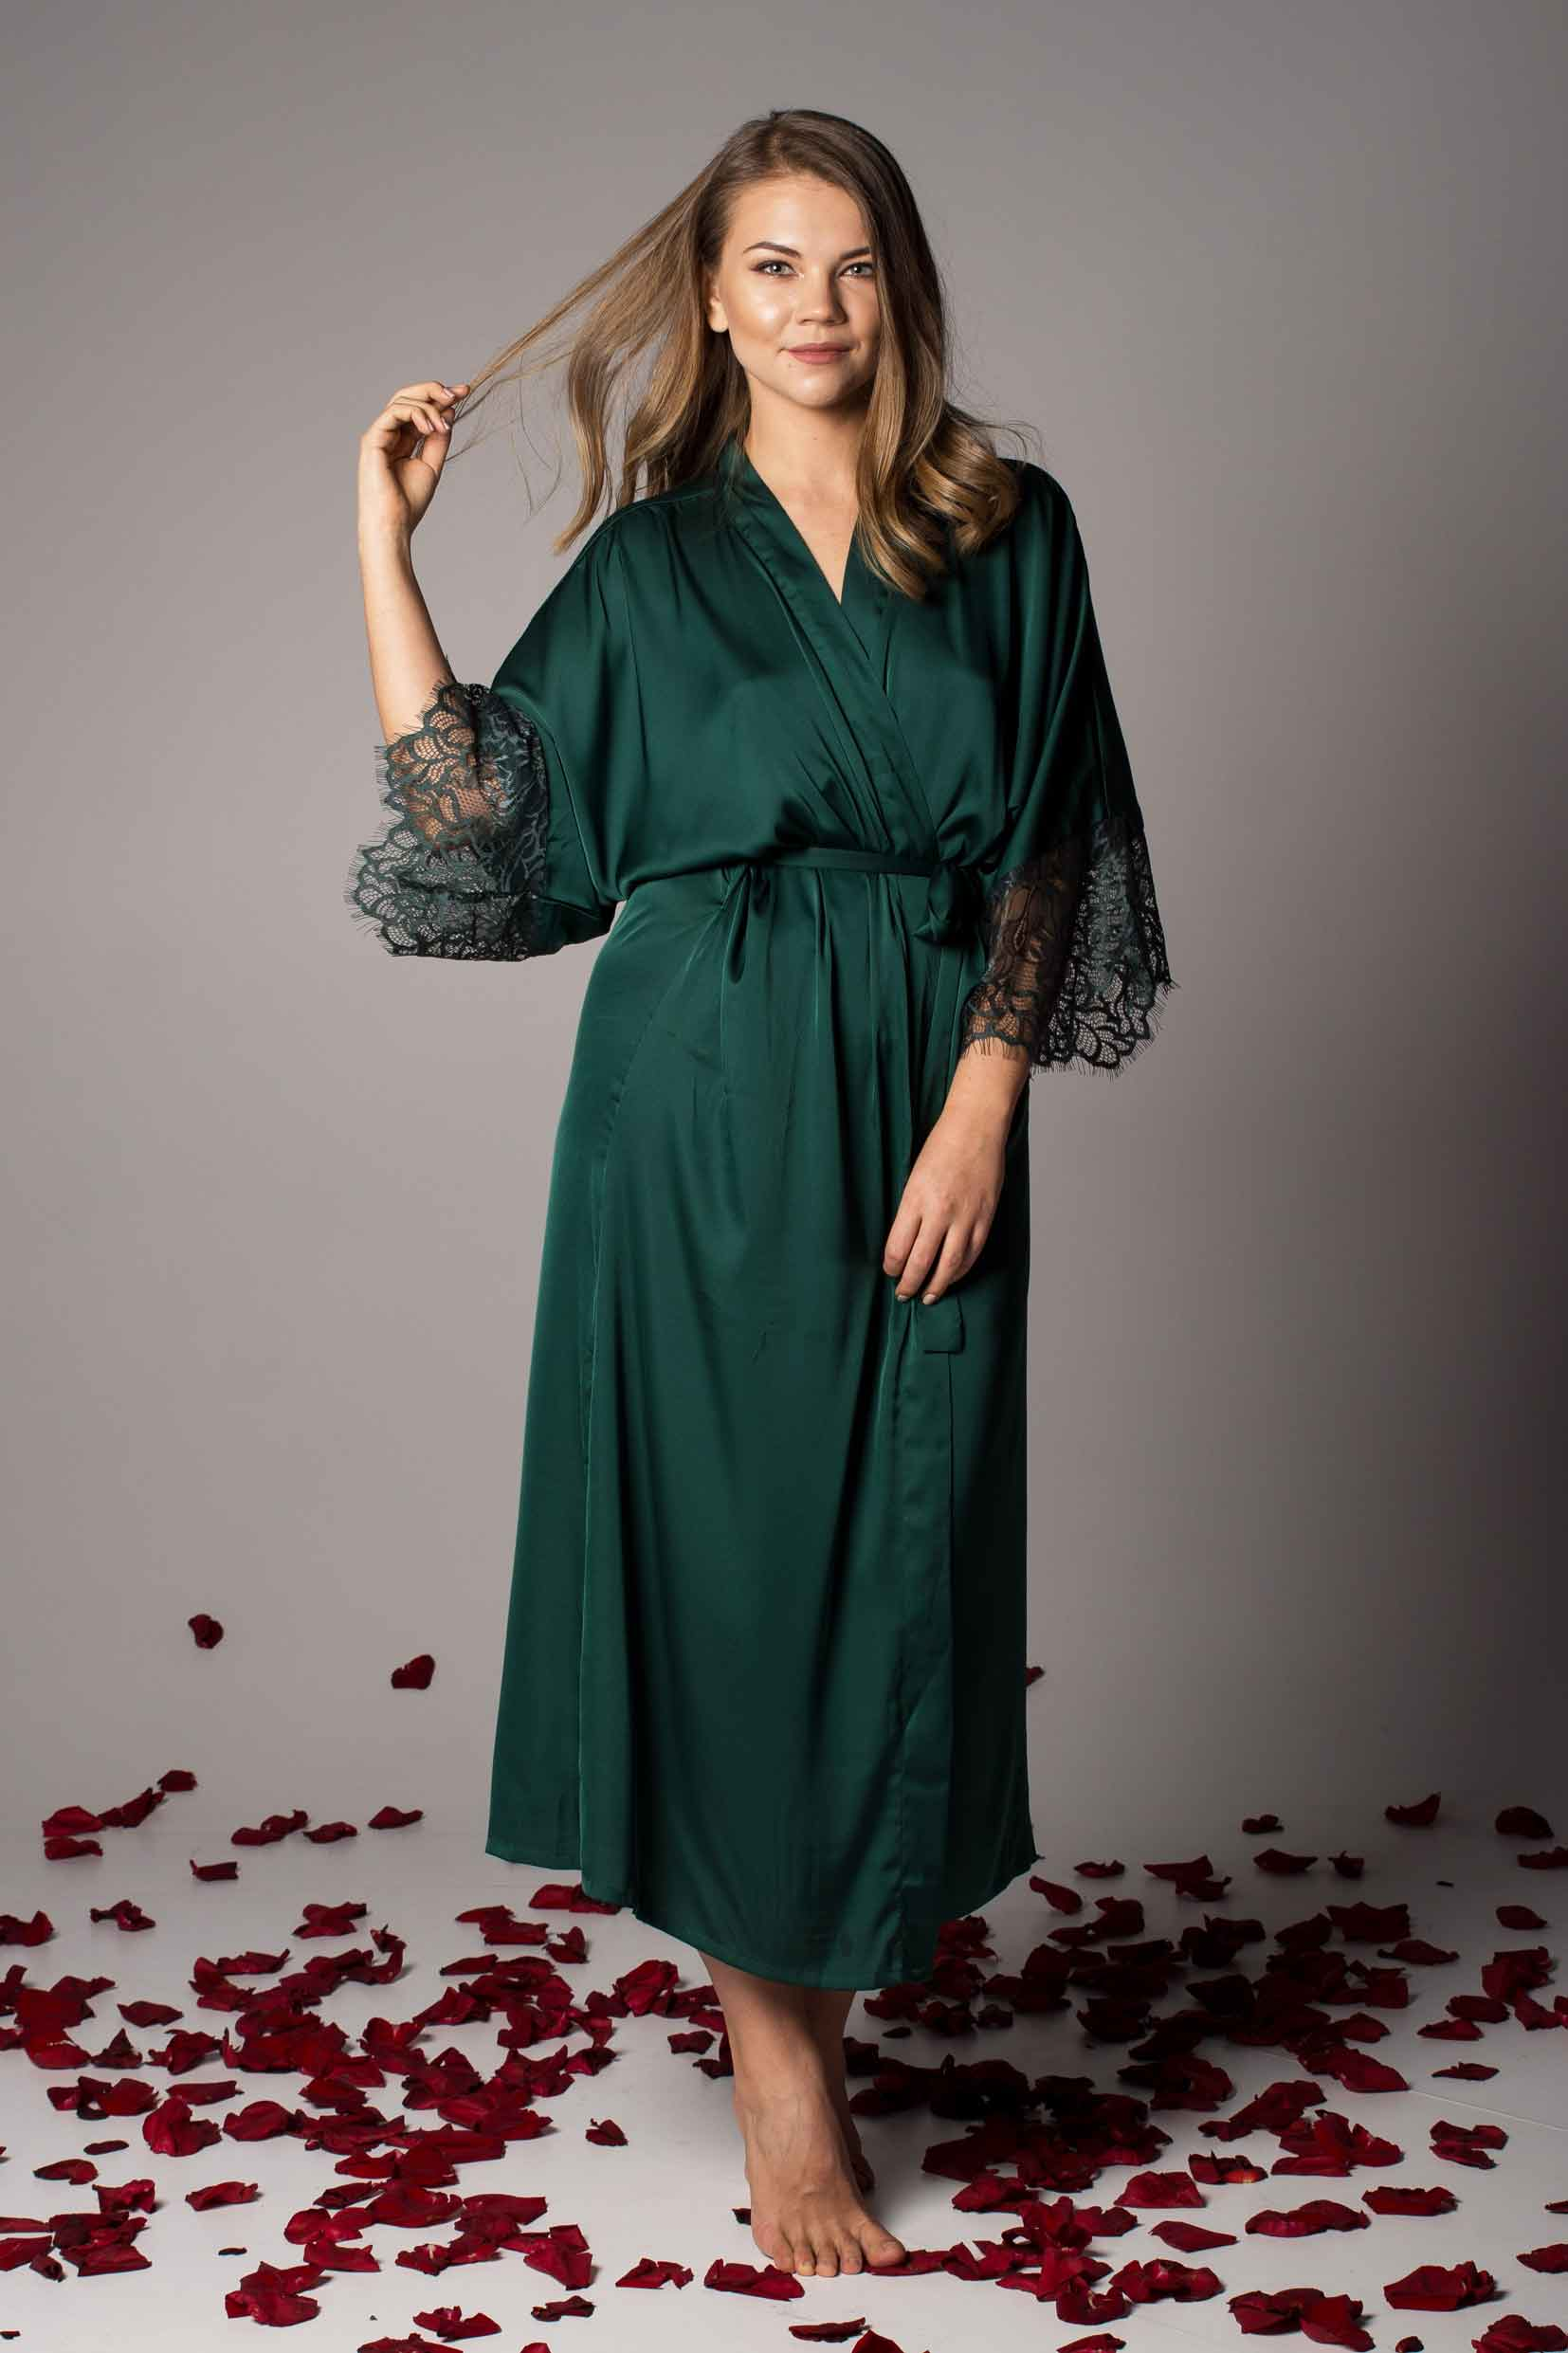 Buy Dressing Gown - Ladies Satin, Silk & Lace Robes | Lingerie UK